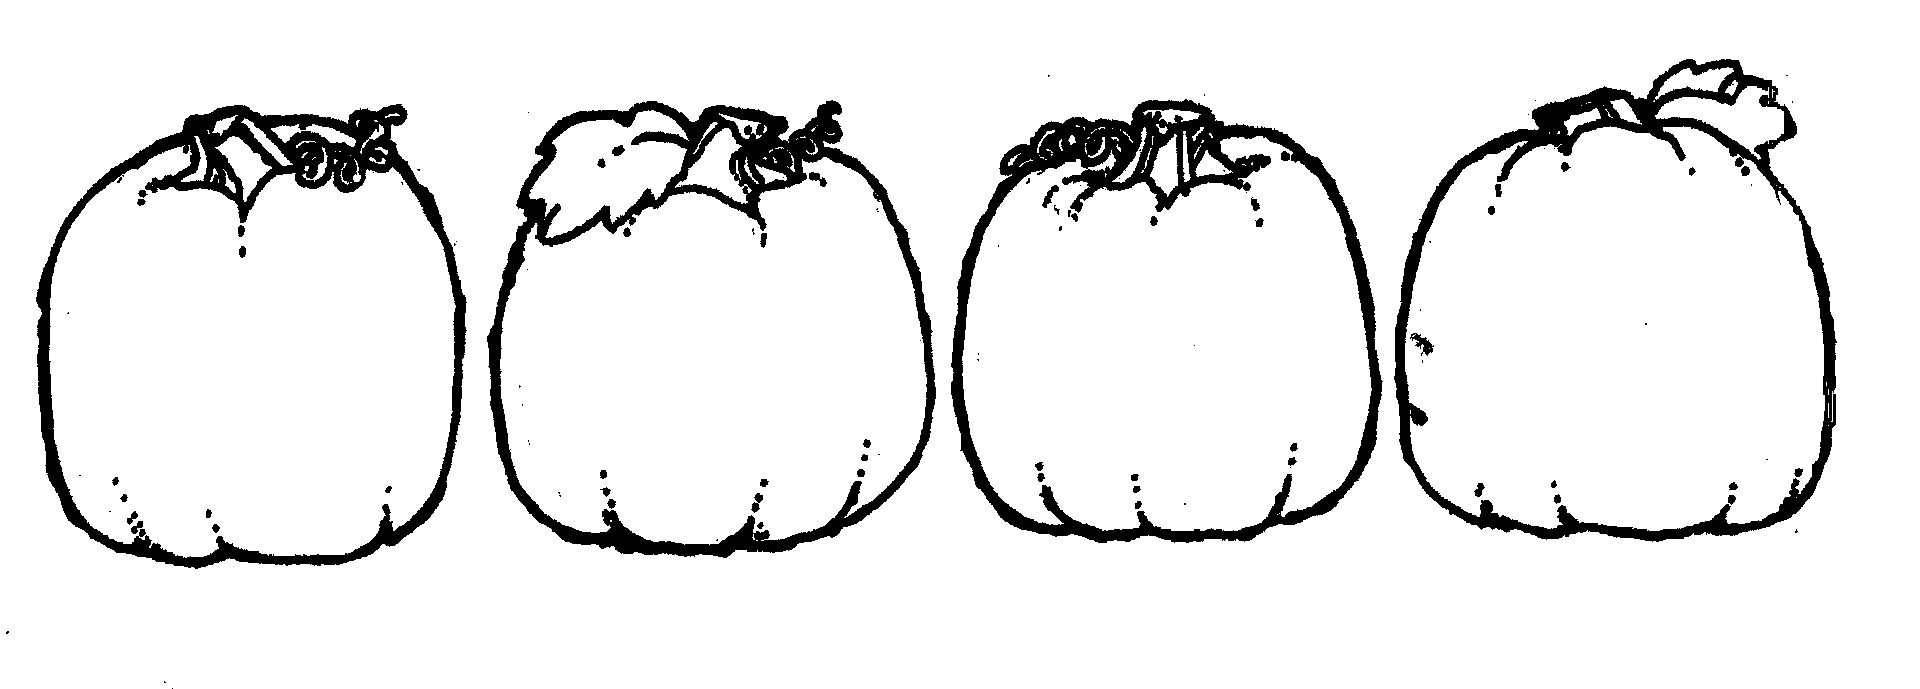 hight resolution of 1920x689 black and white pumpkin clip art fun for christmas